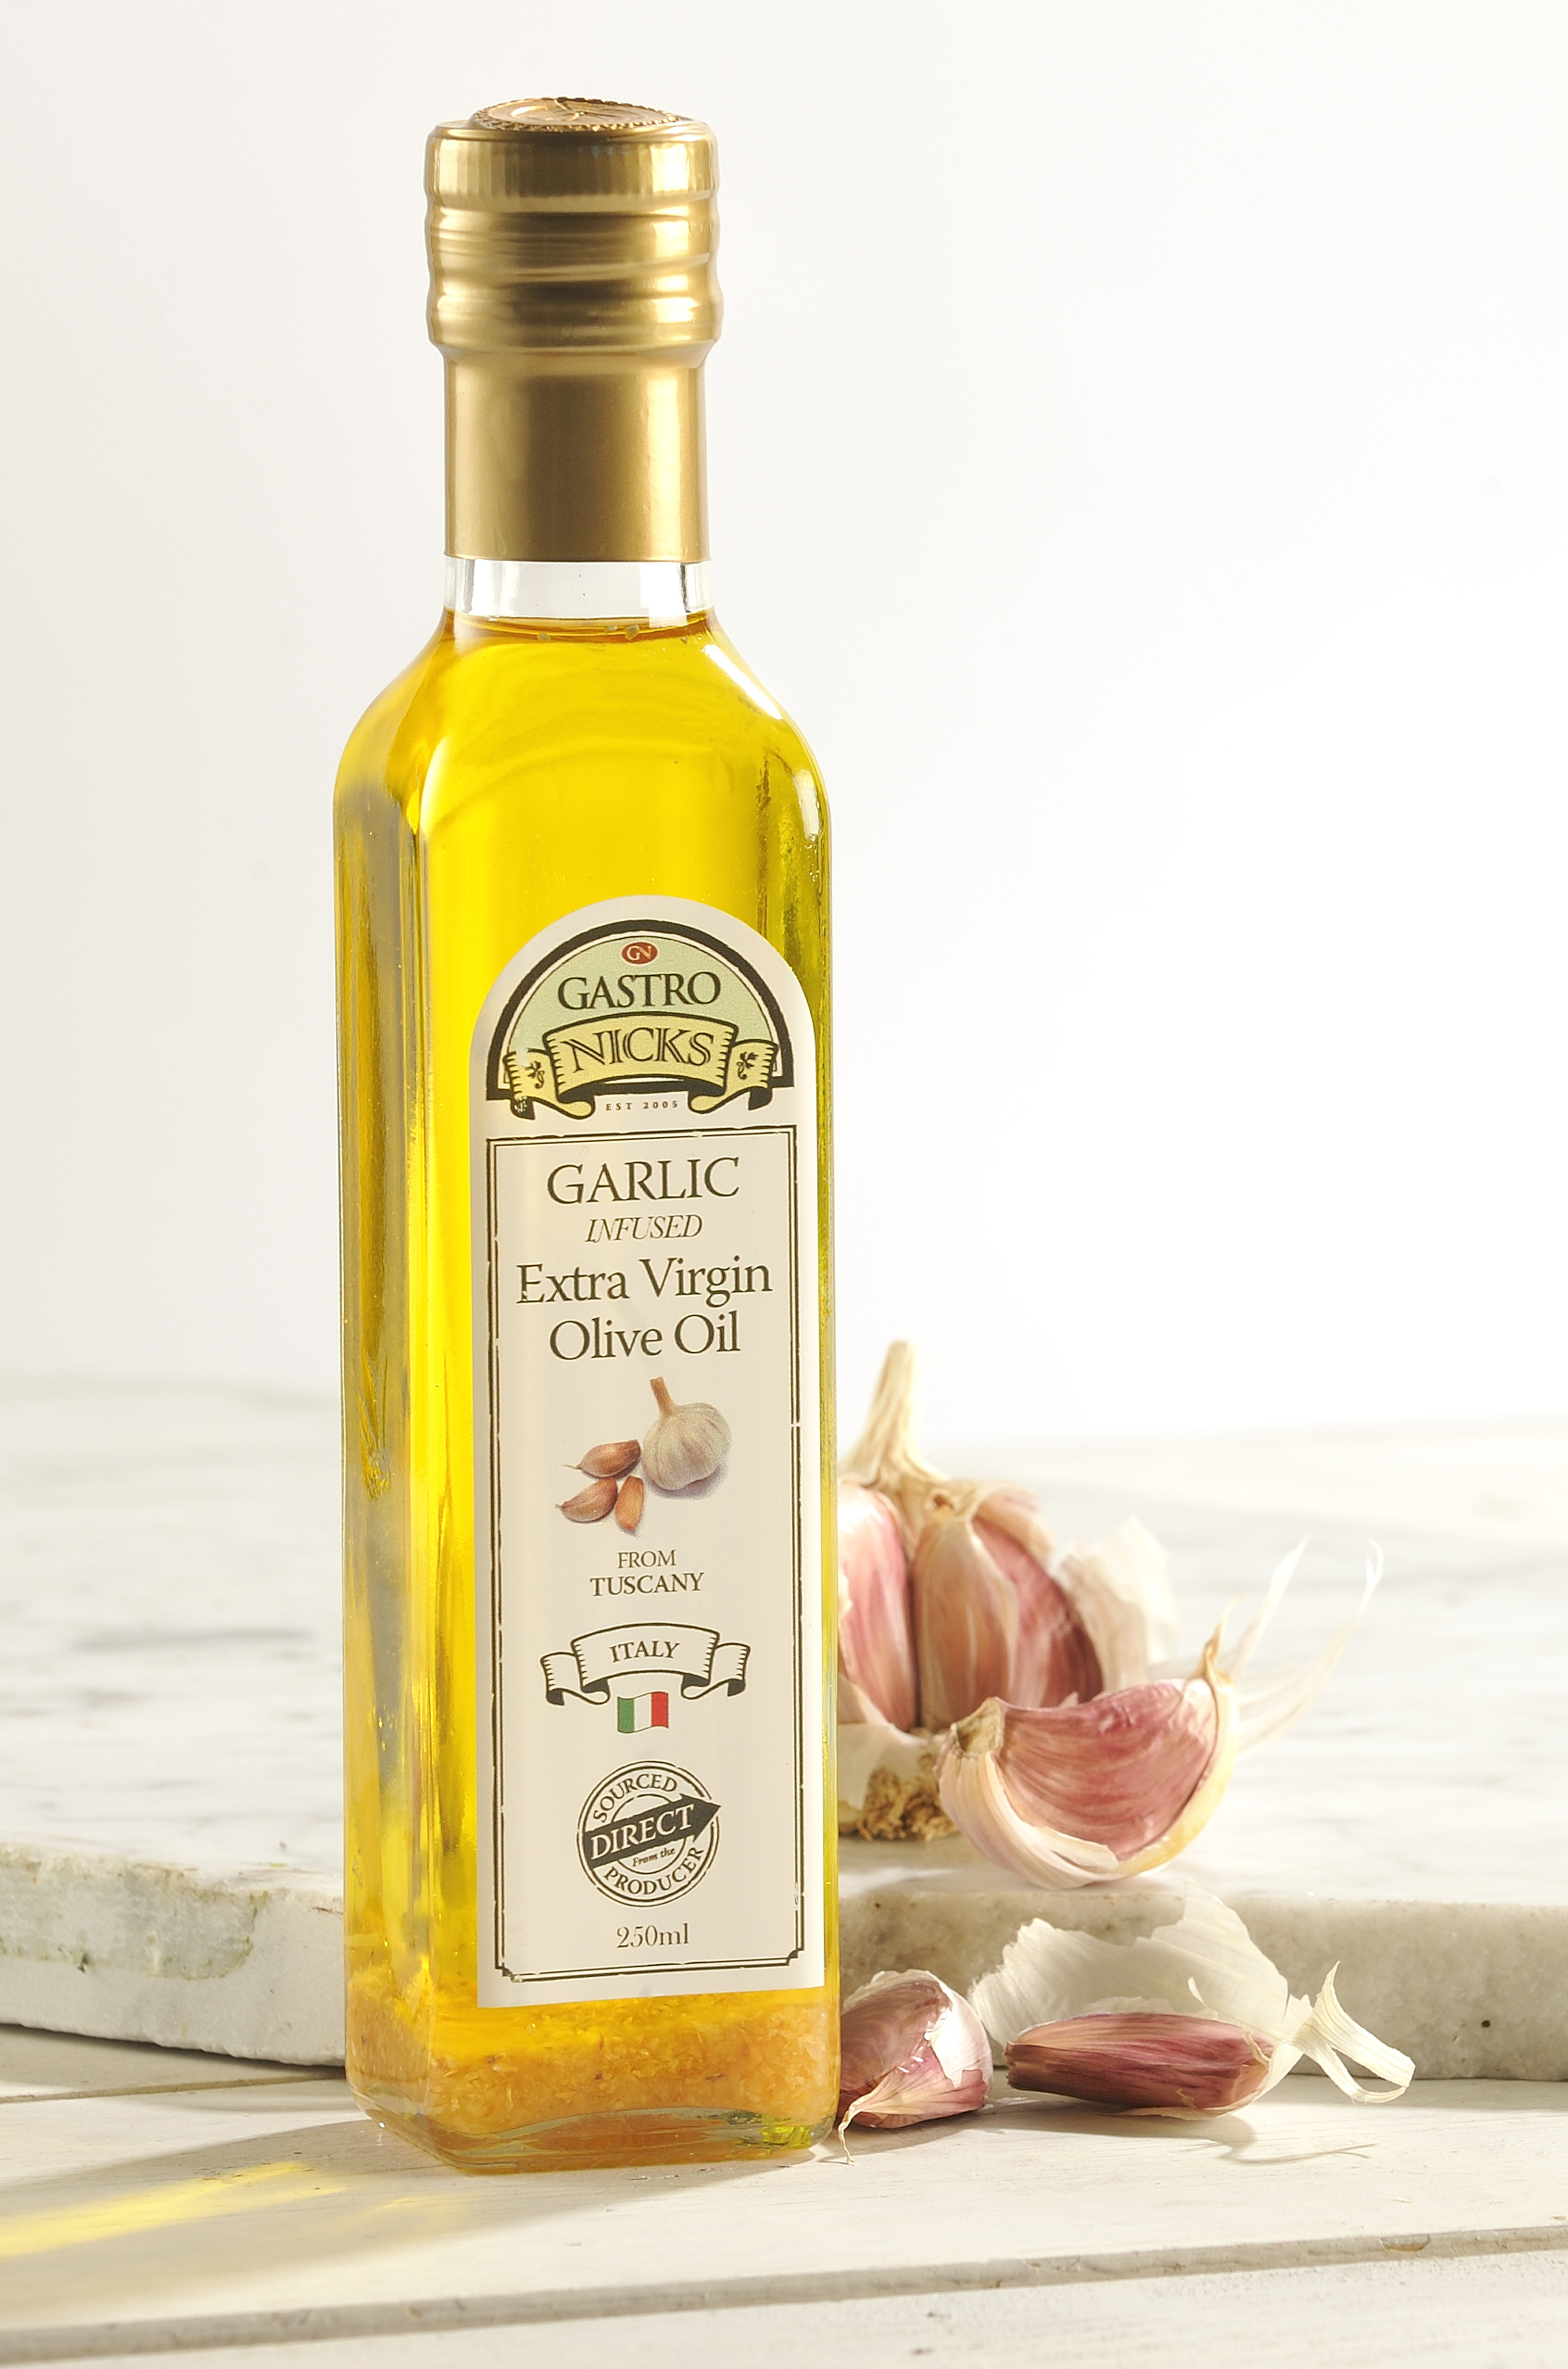 Garlic infused olive oil gastro nicks for Frying fish in olive oil